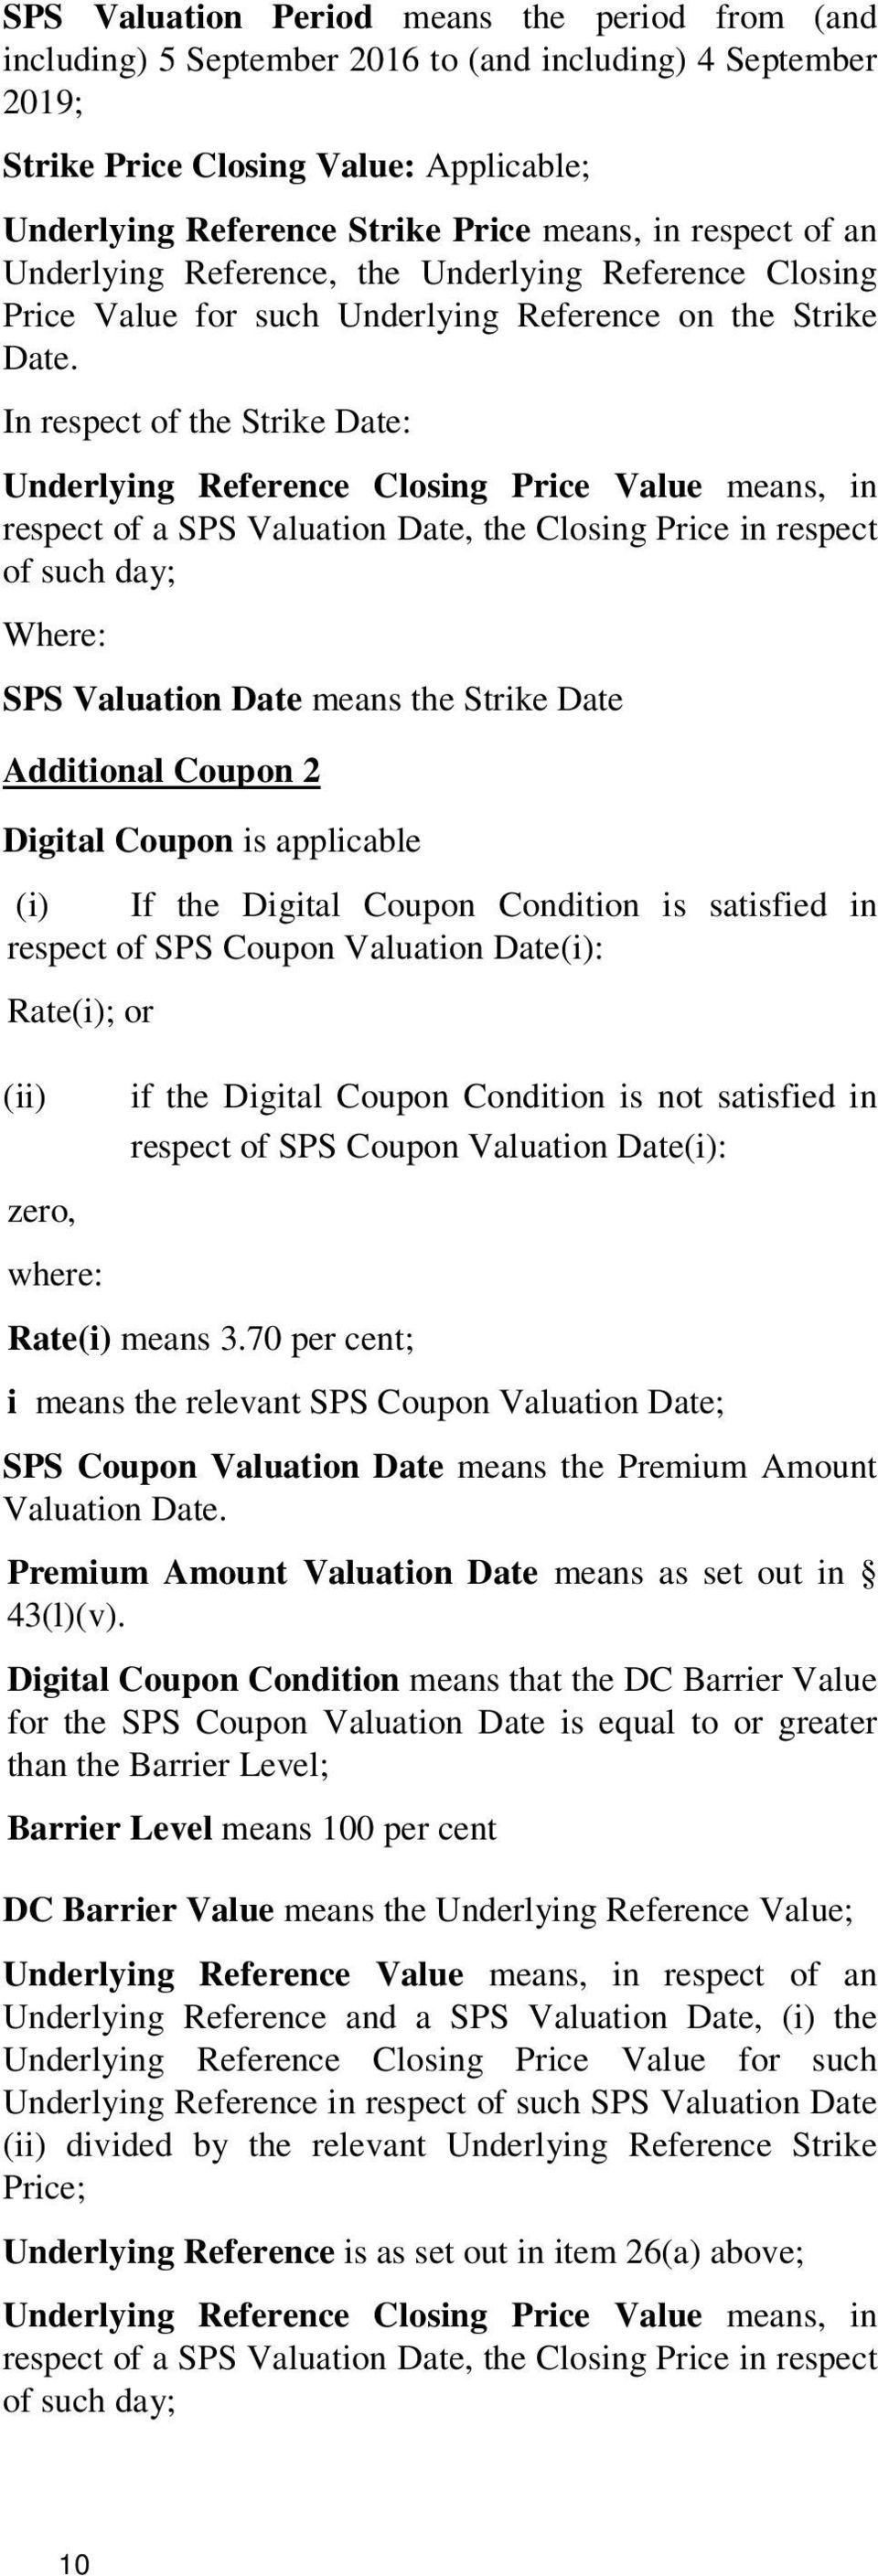 In respect of the Strike Date: Underlying Reference Closing Price Value means, in respect of a SPS Valuation Date, the Closing Price in respect of such day; Where: SPS Valuation Date means the Strike